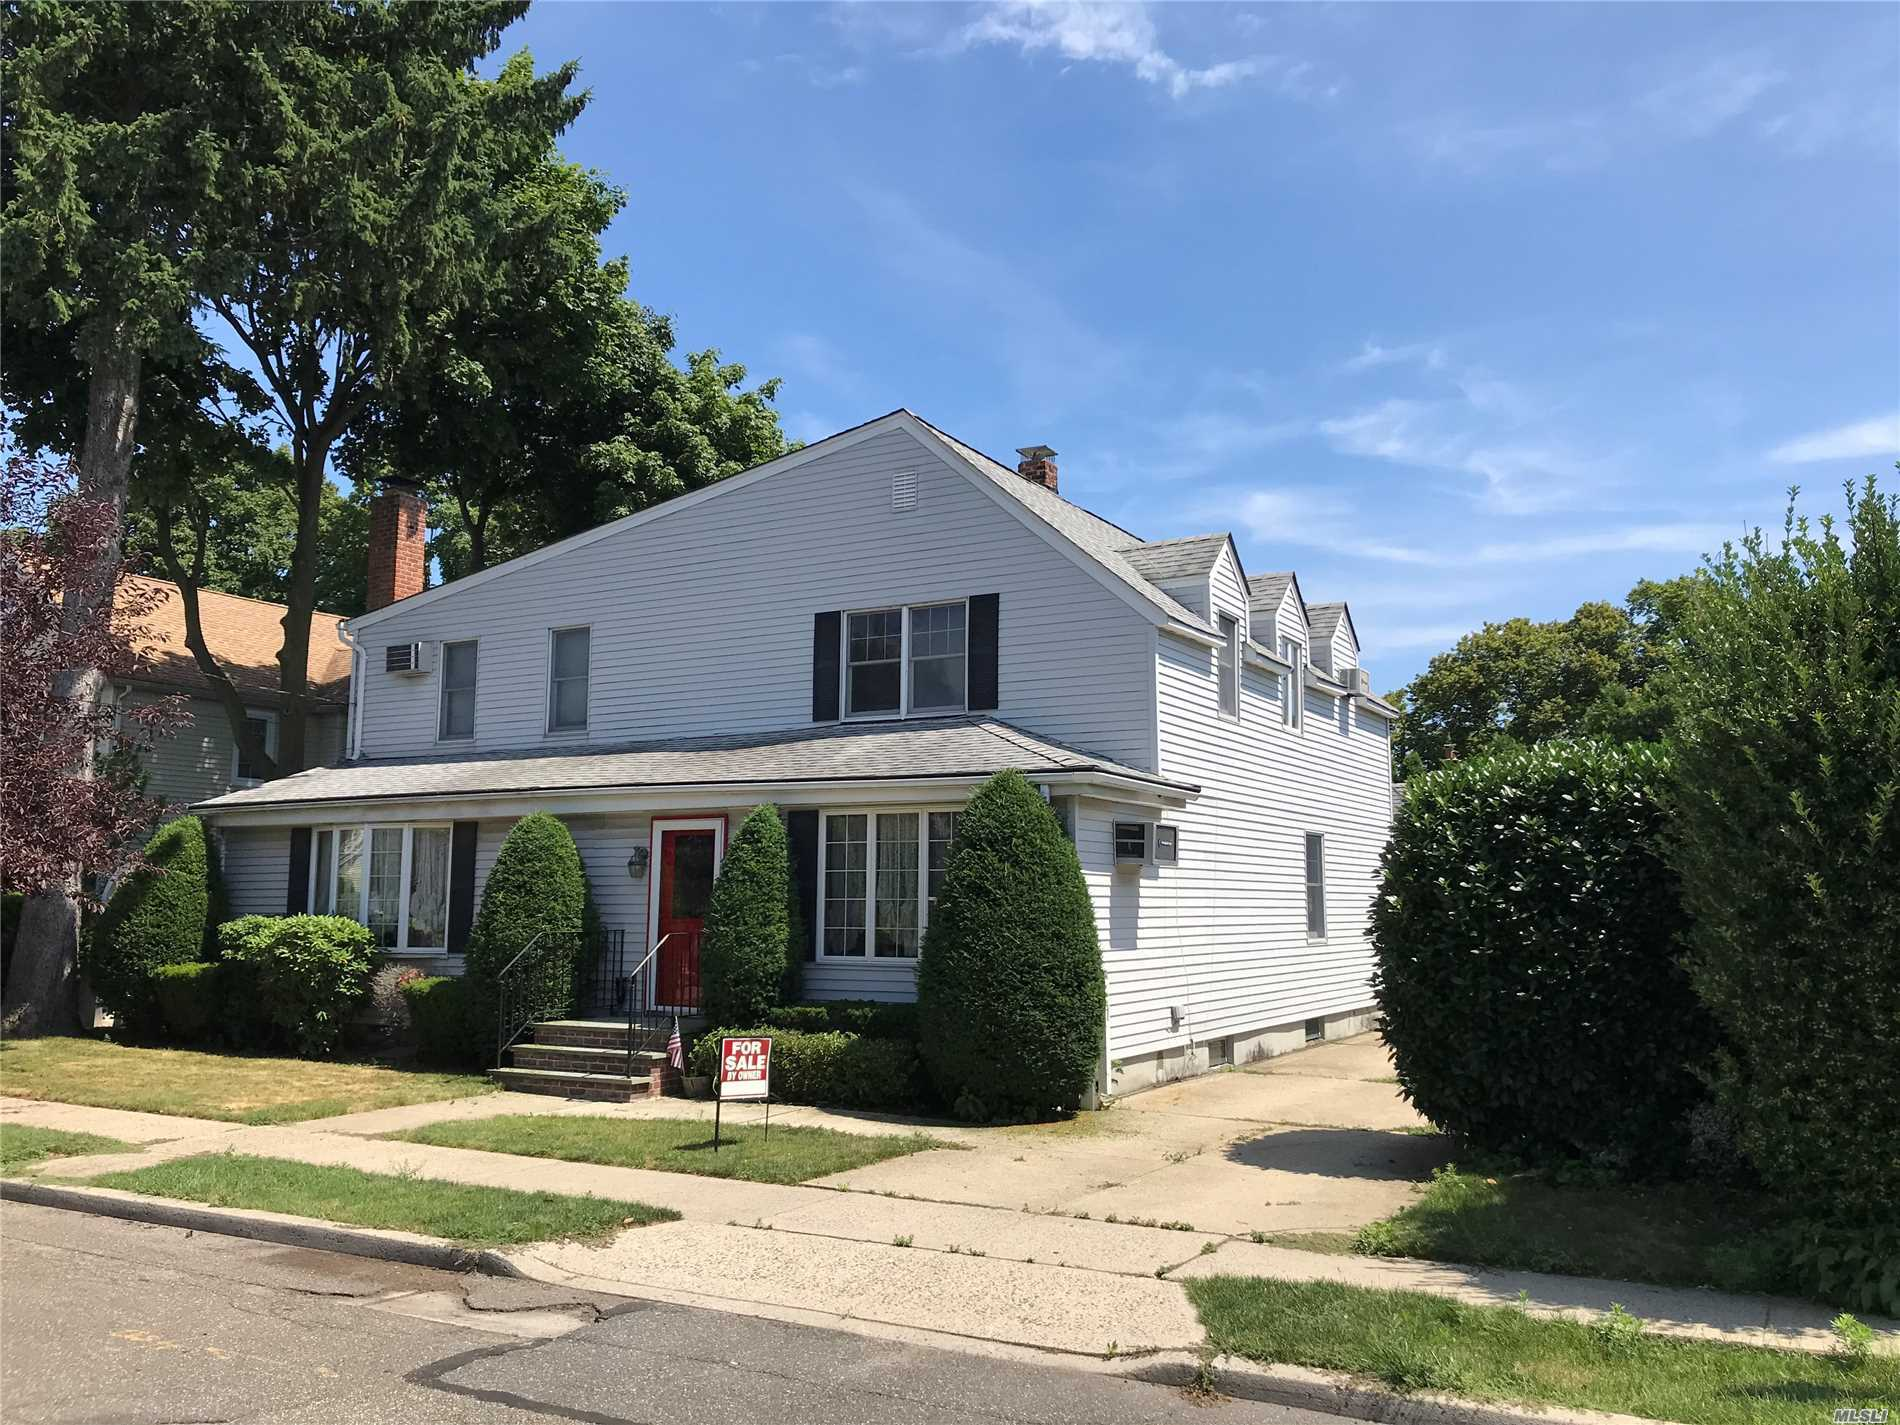 Optimal Location! This Charming, Quaint & Beautifully Landscaped Home Is Perfect For Your Family. Large Great Room With Gas Fireplace, Living Room, Formal Entertaining Size Dining Room. Full Eat In Kitchen. Above Ground Pool. Spacious Back Yard. Over Sized Garage.